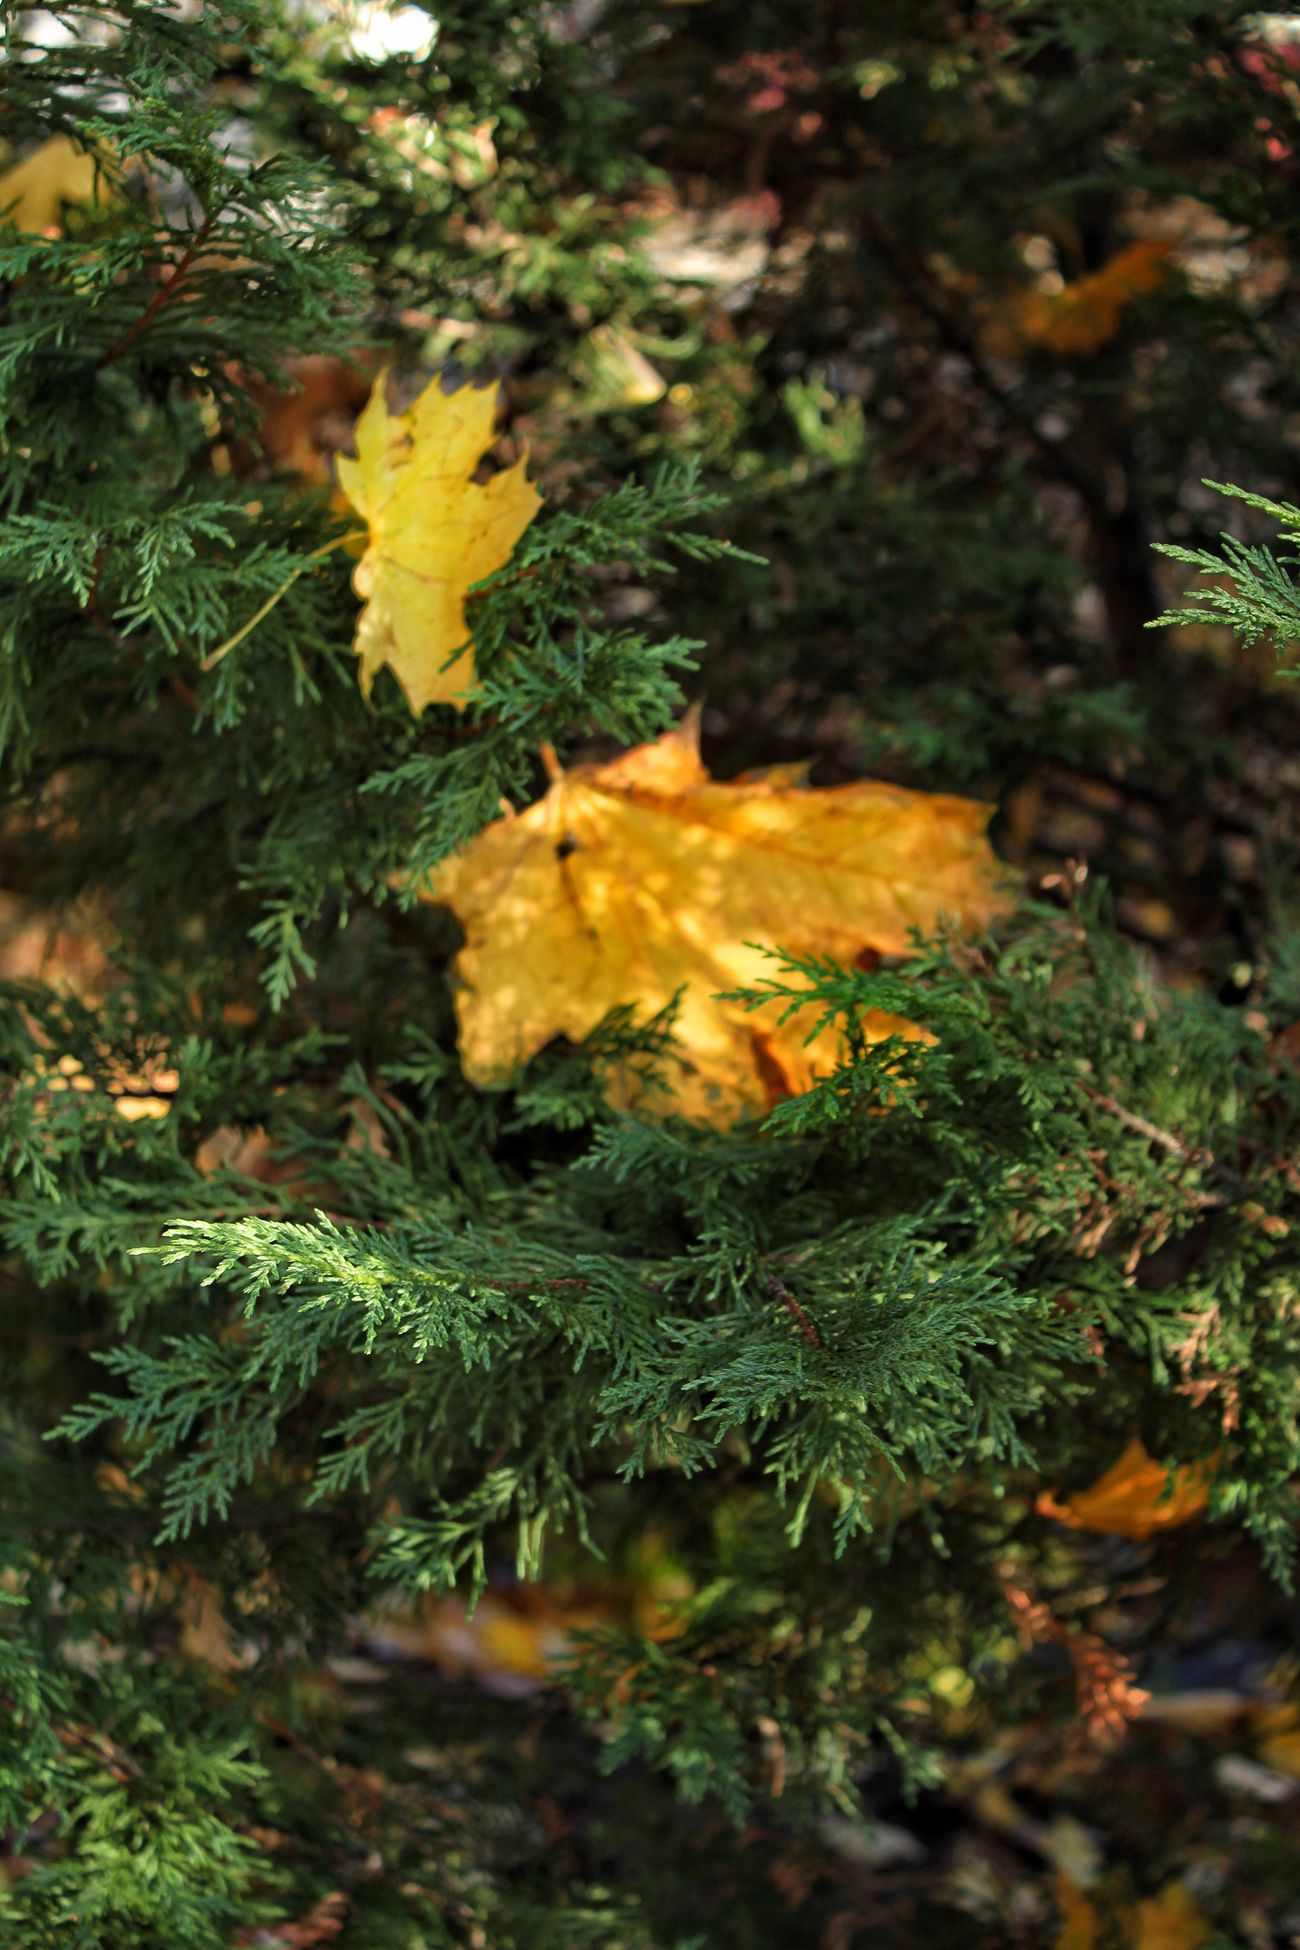 Beauty In Nature Shadows And Light Autumn Leaves Conifers Color Photography